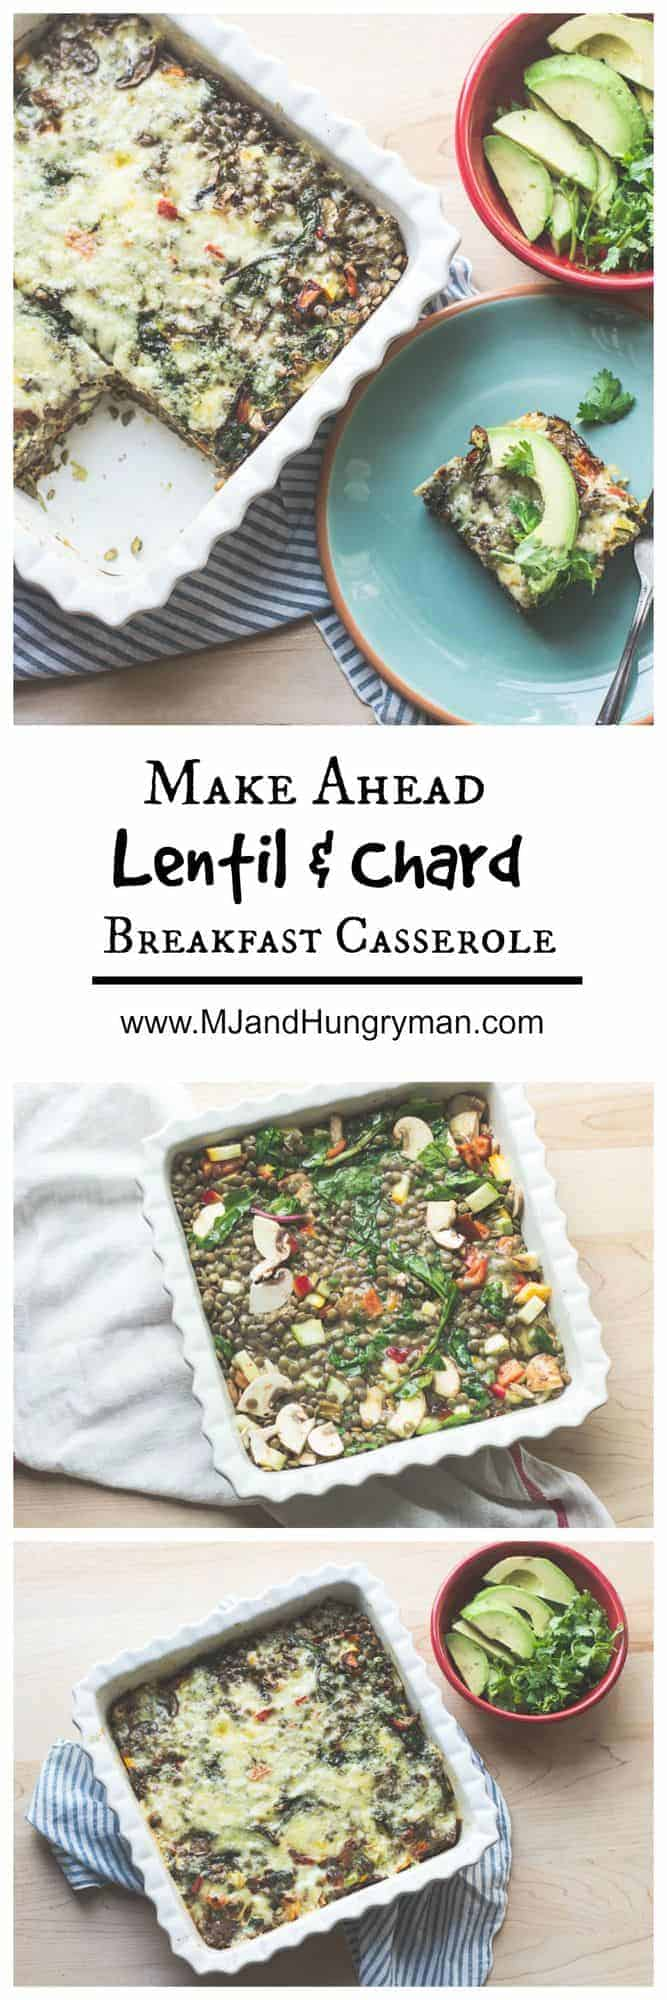 Make Ahead Mexican lentil and chard breakfast casserole